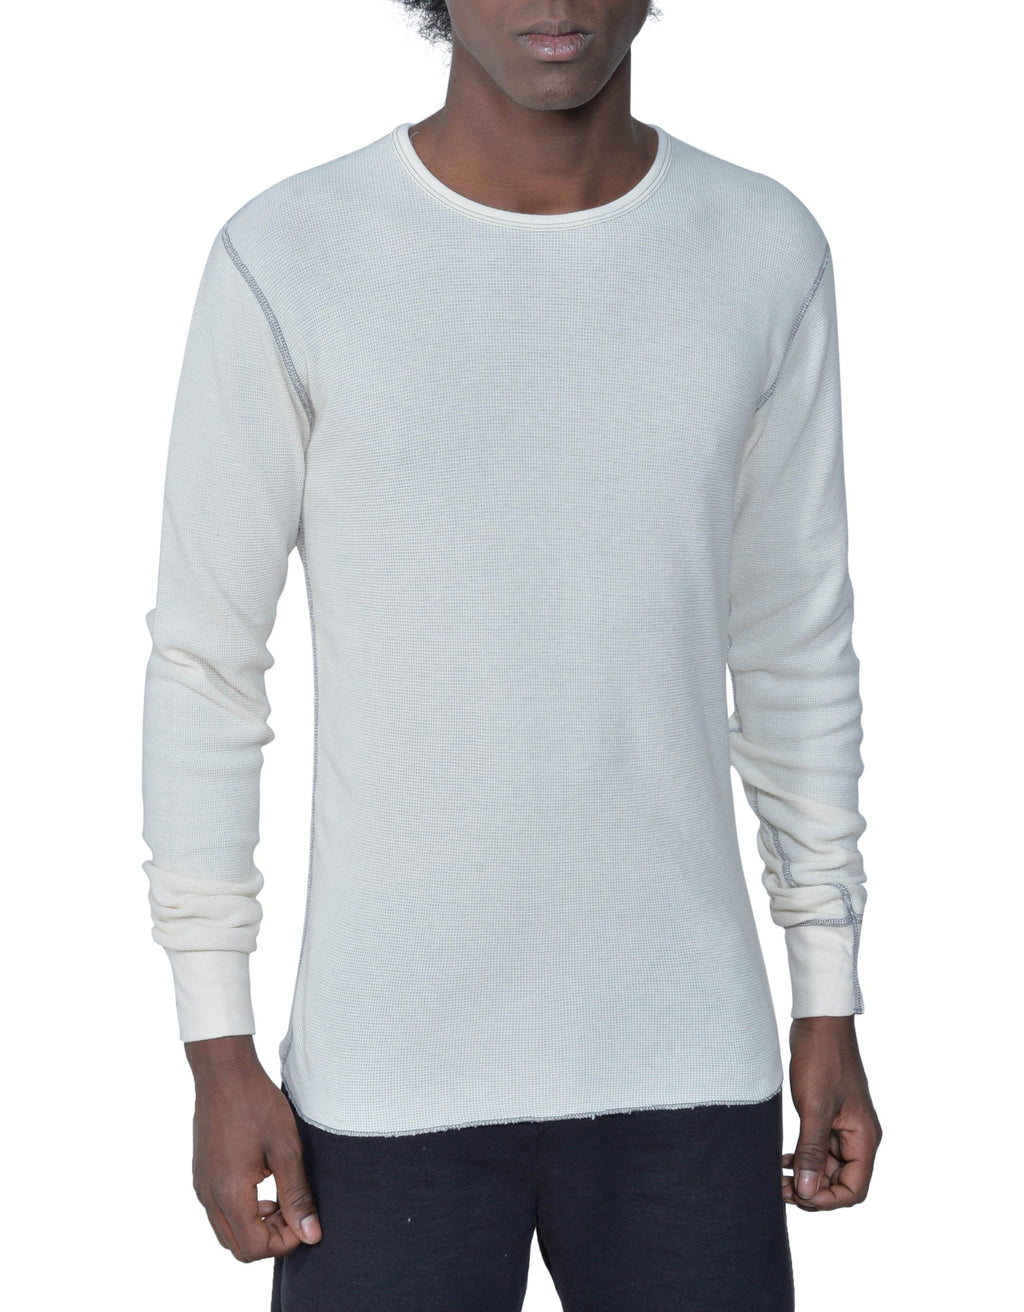 Men's Organic Cotton Long Sleeve Lightweight Thermal - Natural - USA Made - Asheville Apparel